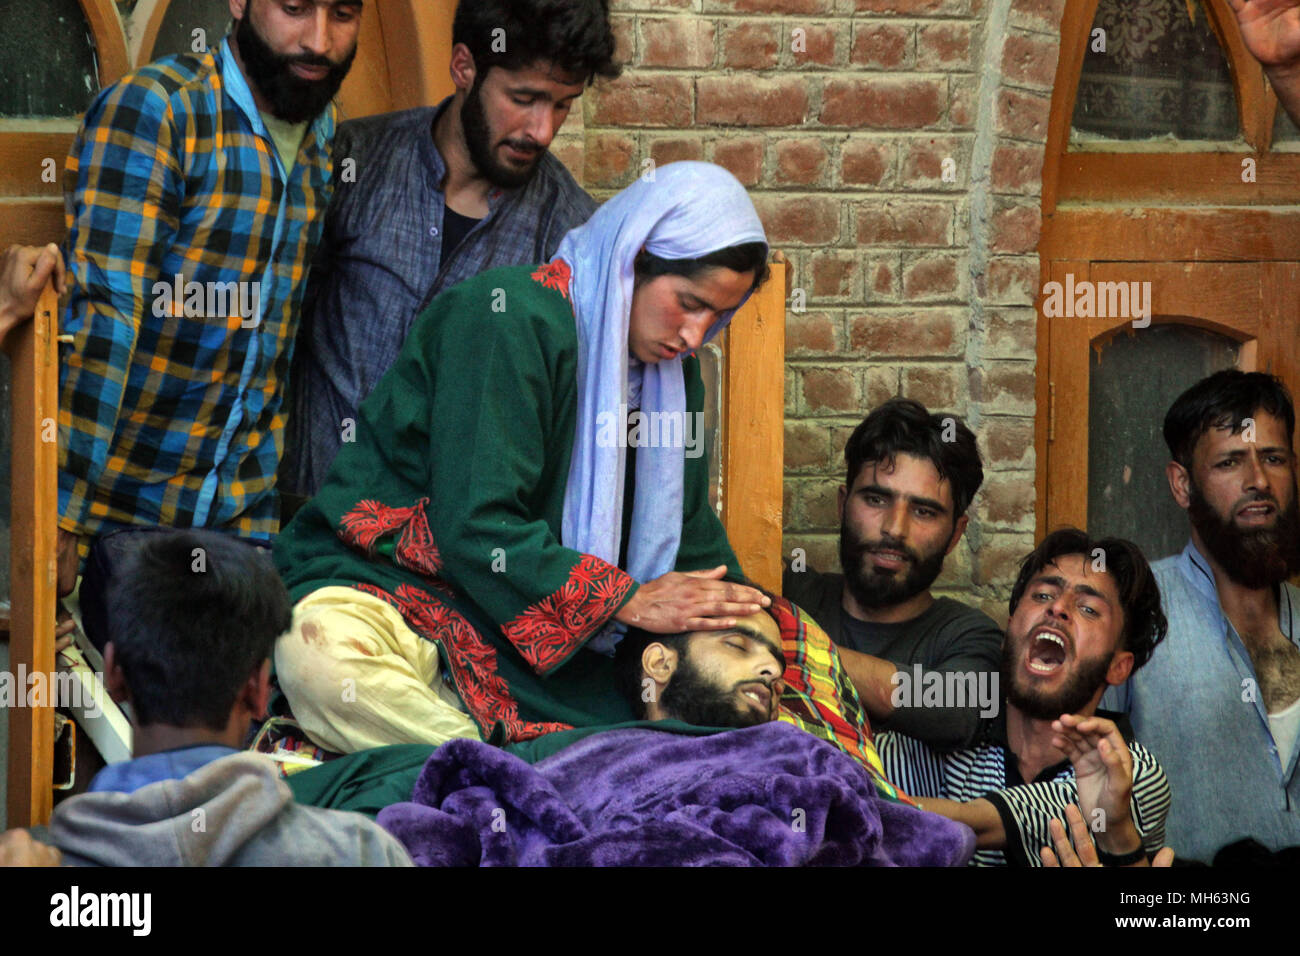 Pulwama, Kashmir. 30th Apr, 2018. Mourners surround the body of a man killed during protests in Pulwama, south of Srinagar, the summer capital of Indian controlled Kashmir. Protests erupted after police reportedly killed two militants during a gunfight. Credit: Faisal Khan/ZUMA Wire/Alamy Live News - Stock Image